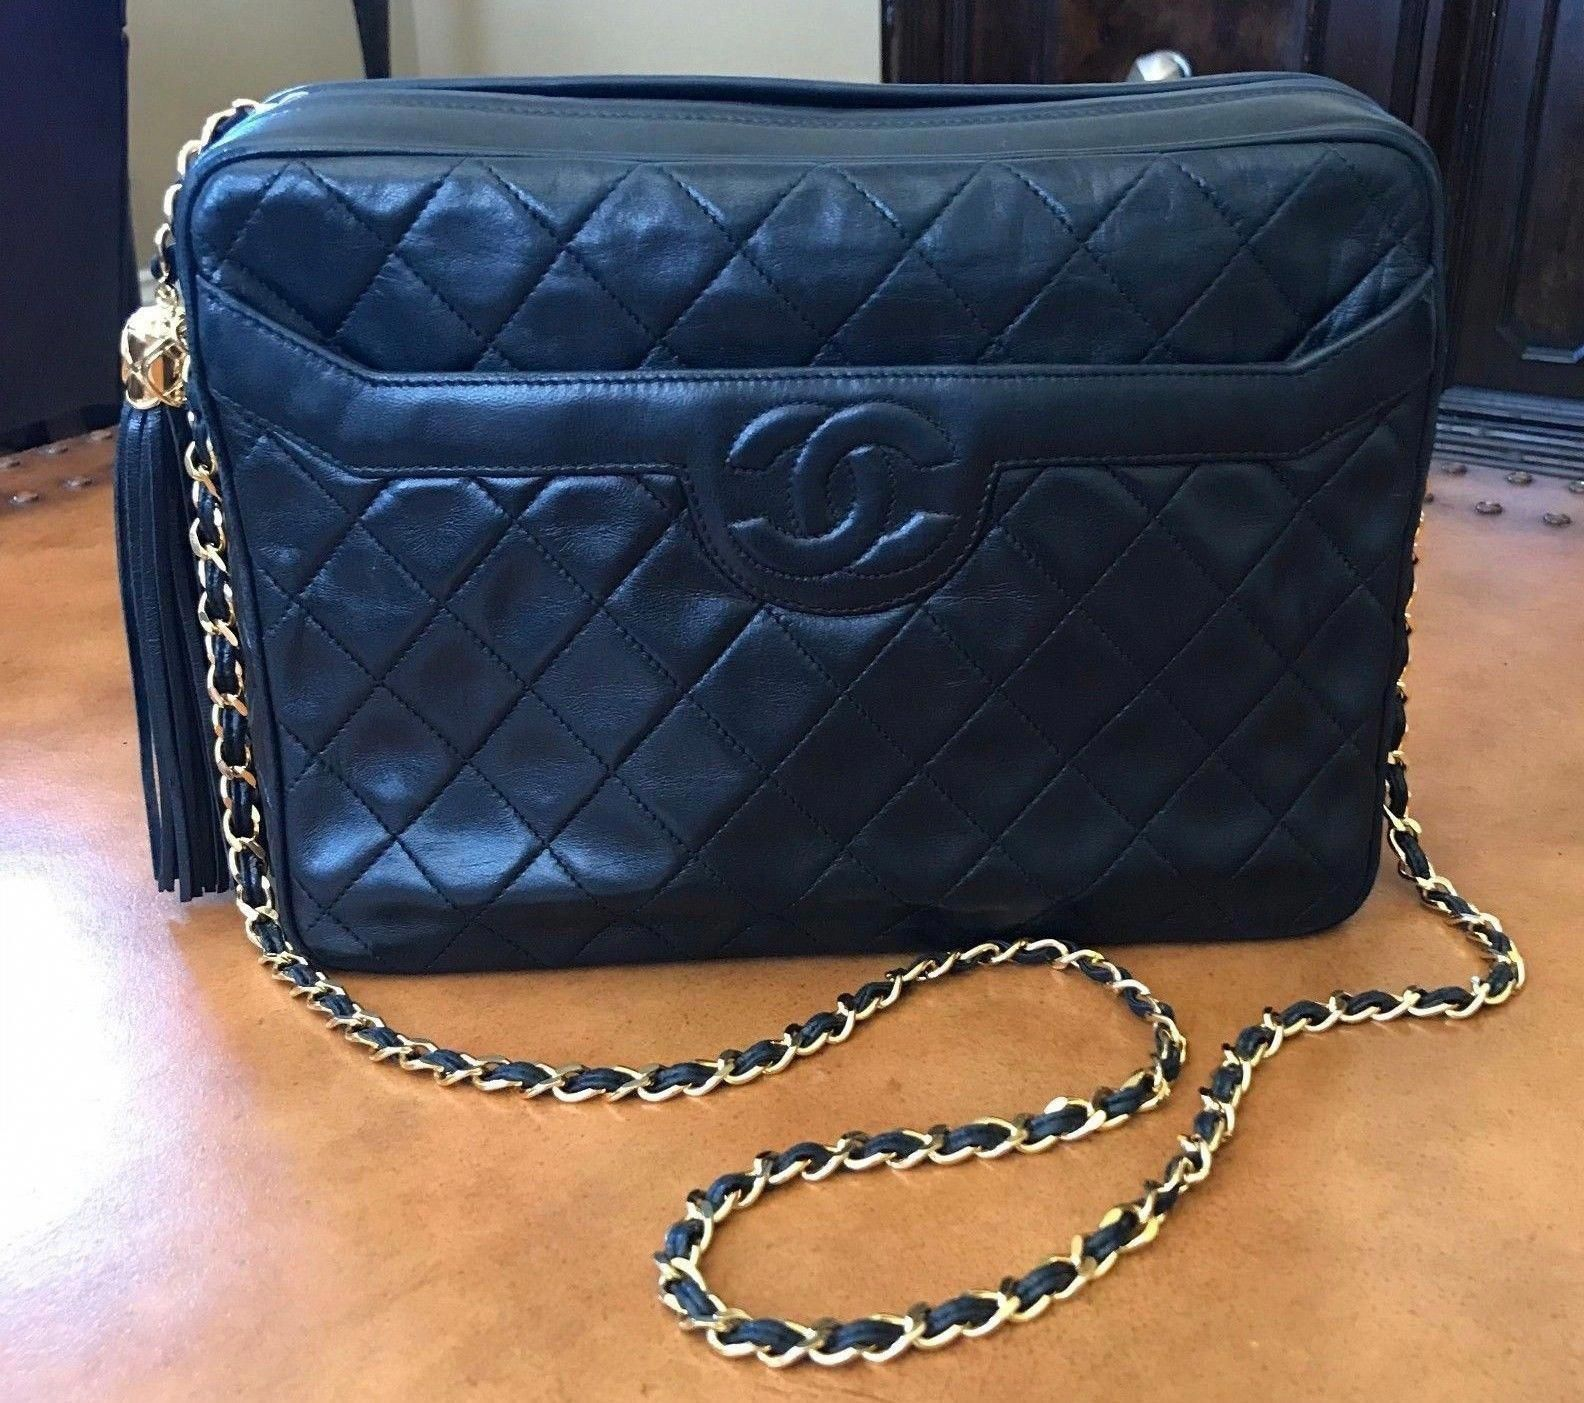 6e7bf8082c36 Pristine Vintage Chanel Black Lambskin Leather Camera Bag - !  #Chanelhandbags #WomensShoulderbags